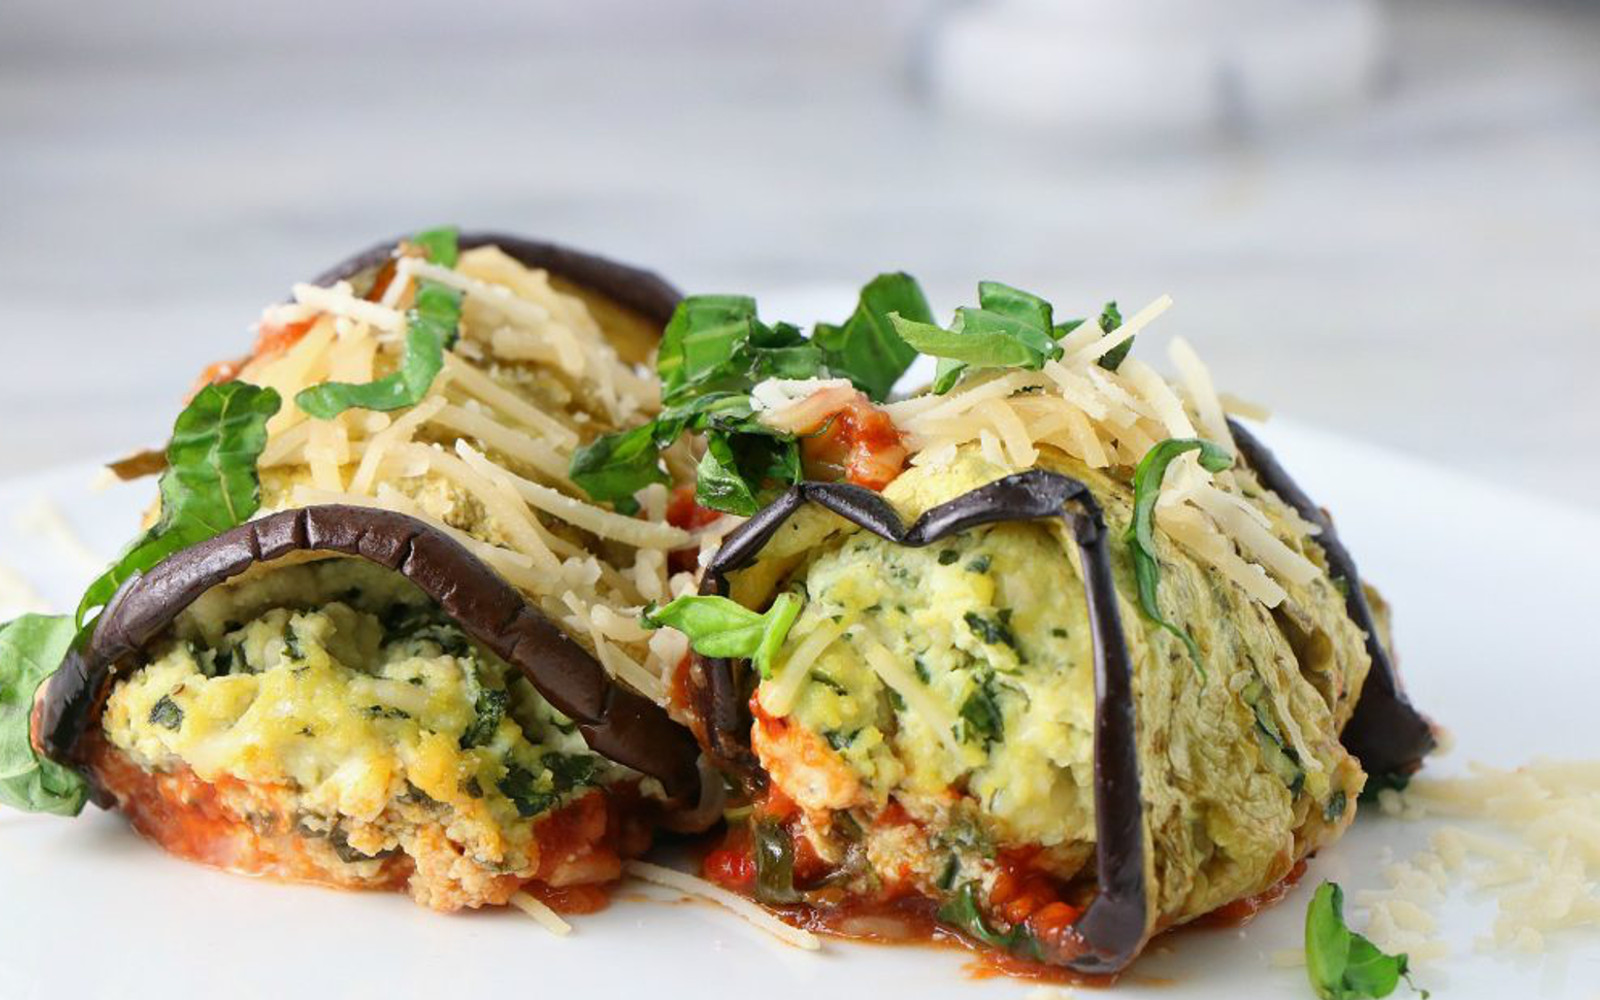 Vegan Eggplant Rollatini with Basil Tofu Ricotta with vegan cheese